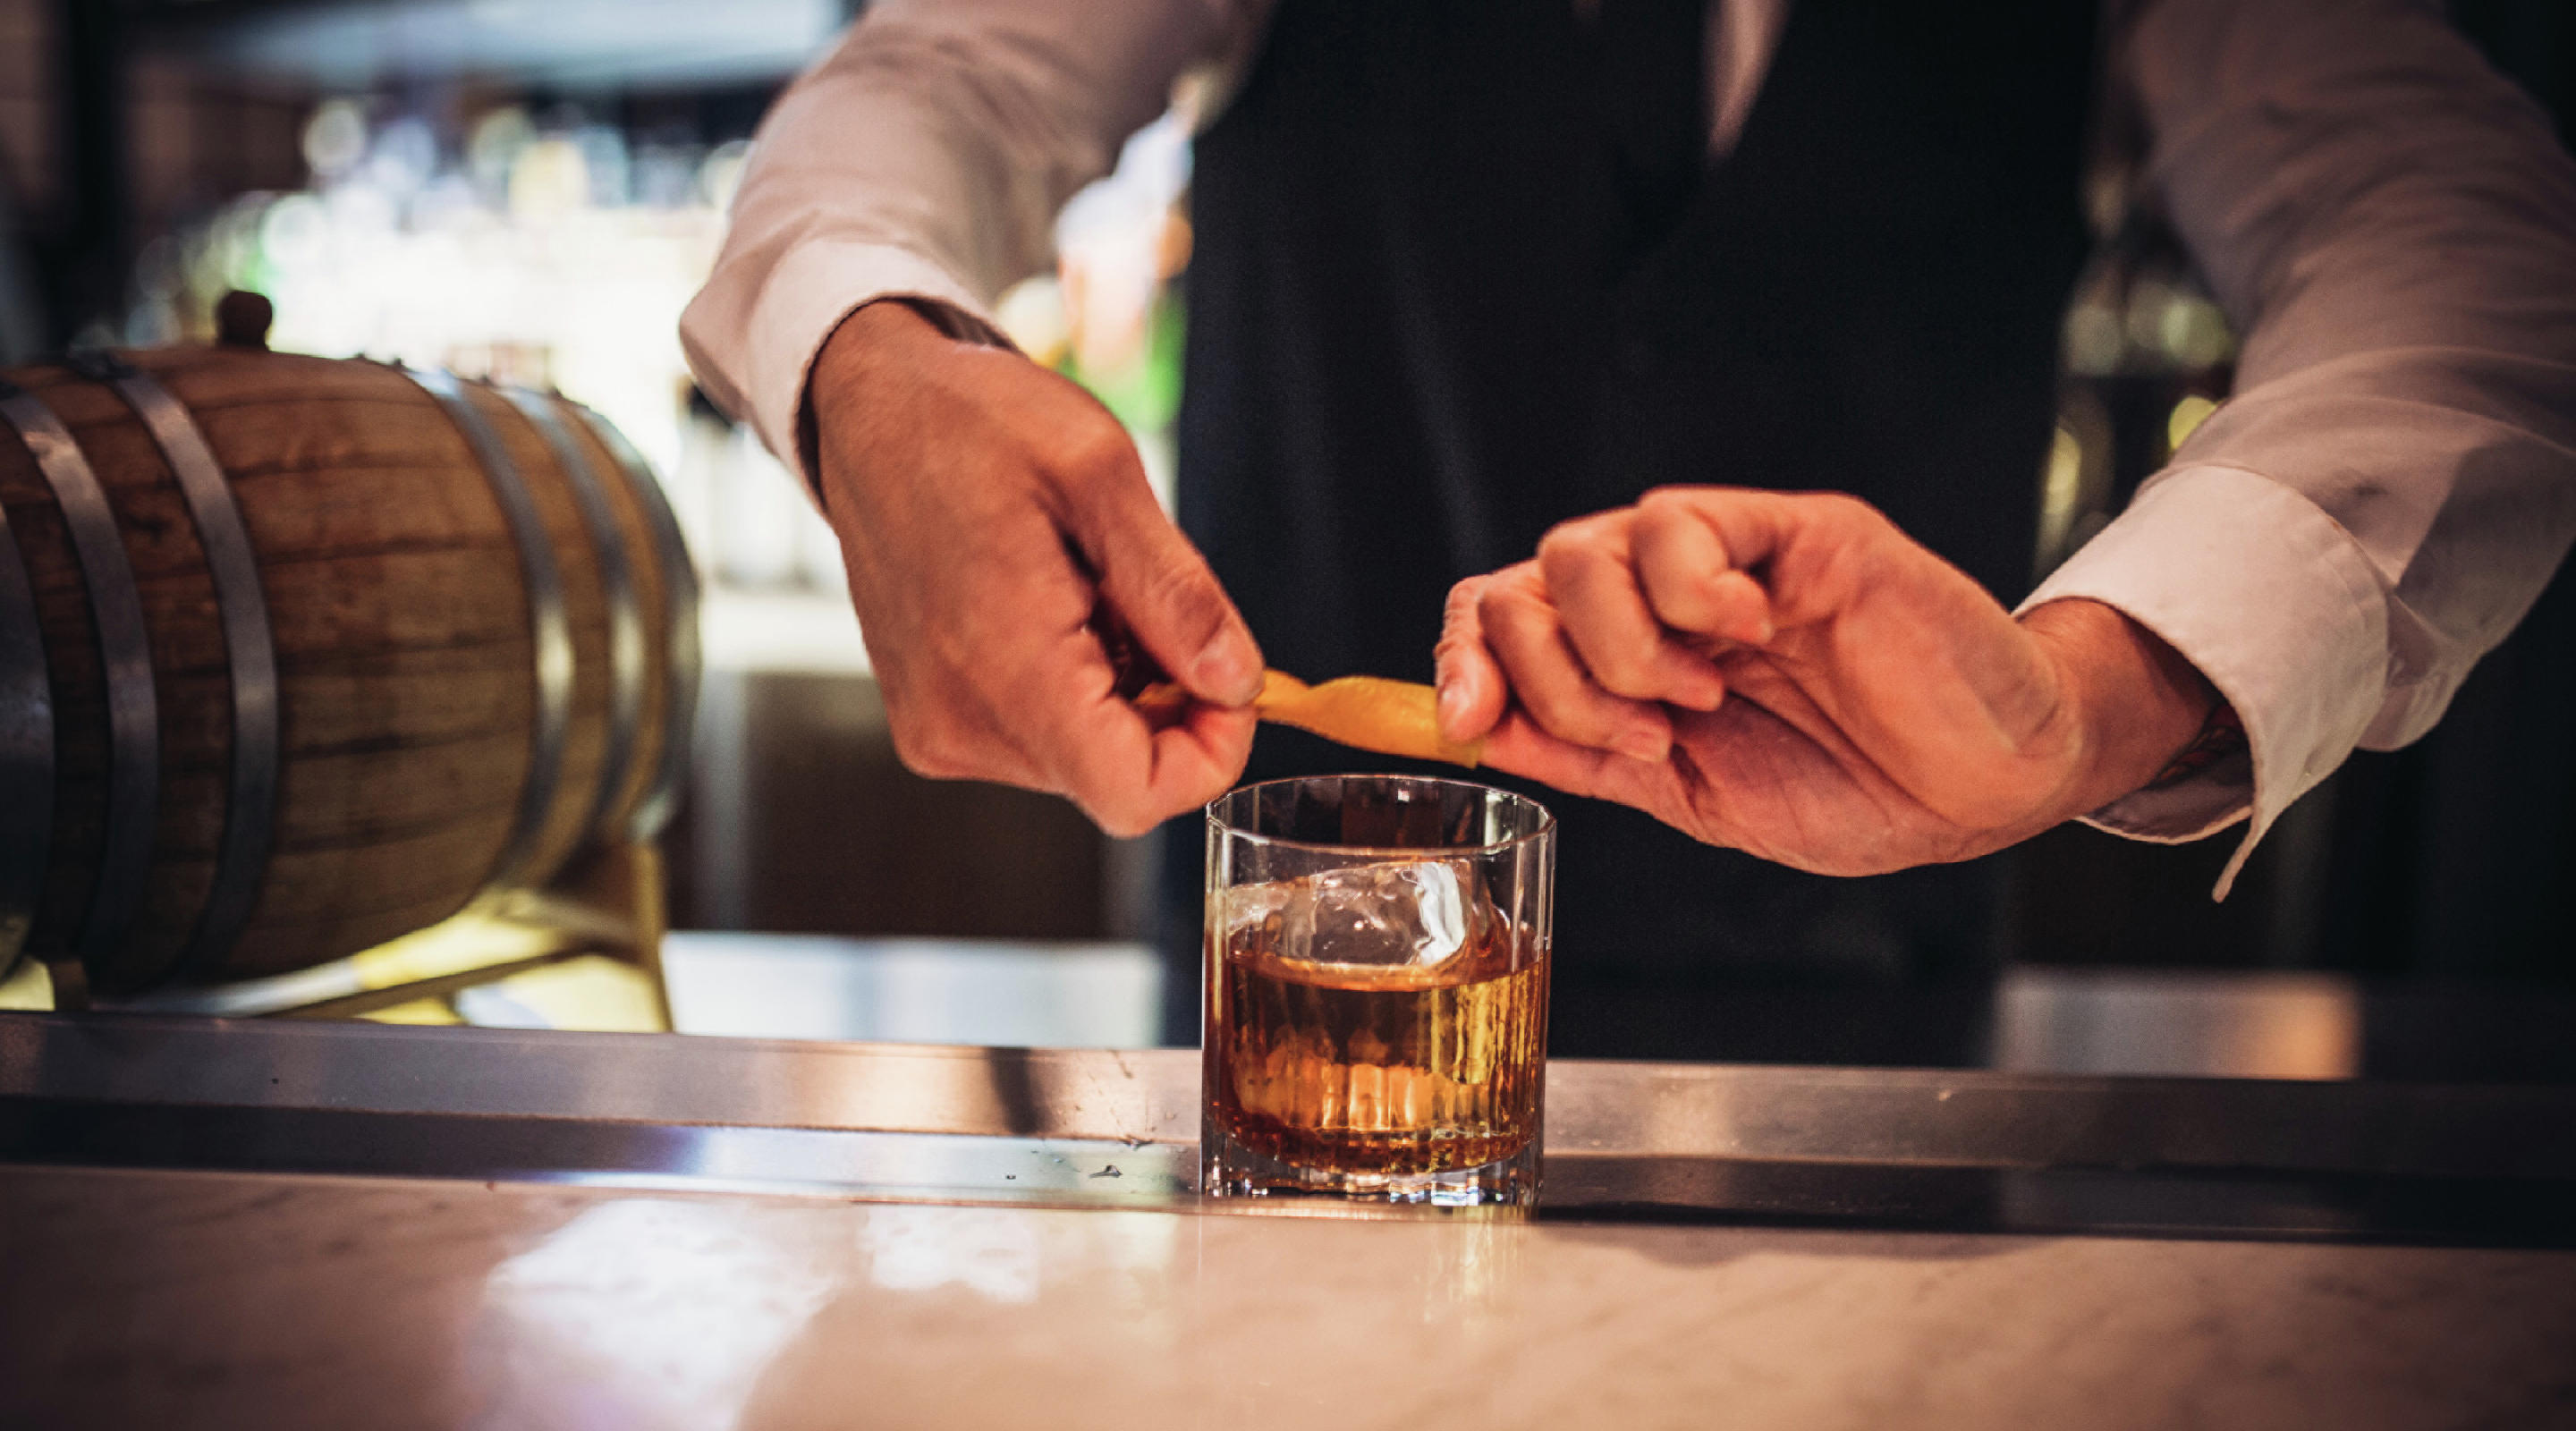 Lupo, located at Mandalay Bay, features one of their bartenders making a refreshing Old Fashioned cocktail.